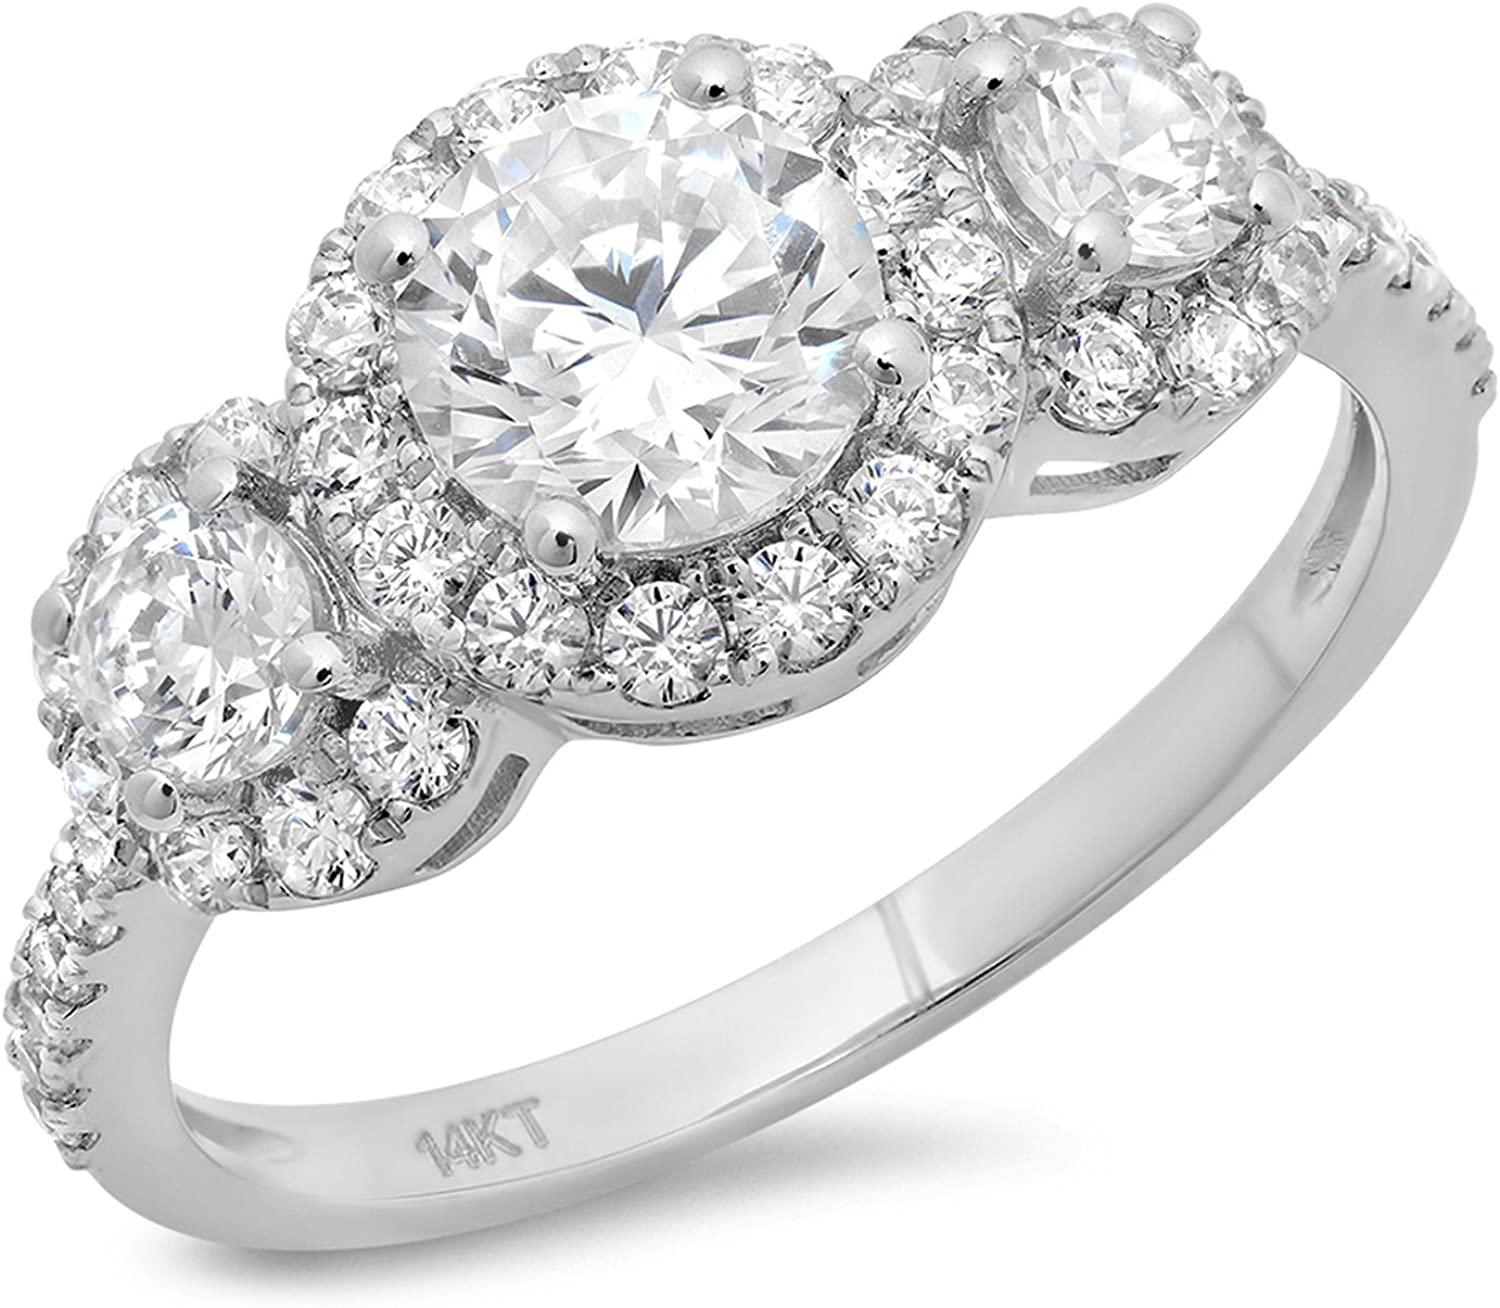 Clara Pucci 1.9 Ct Round Cut Solitaire Engagement Promise Anniversary Pave Halo Bridal Band Ring 14K White Gold